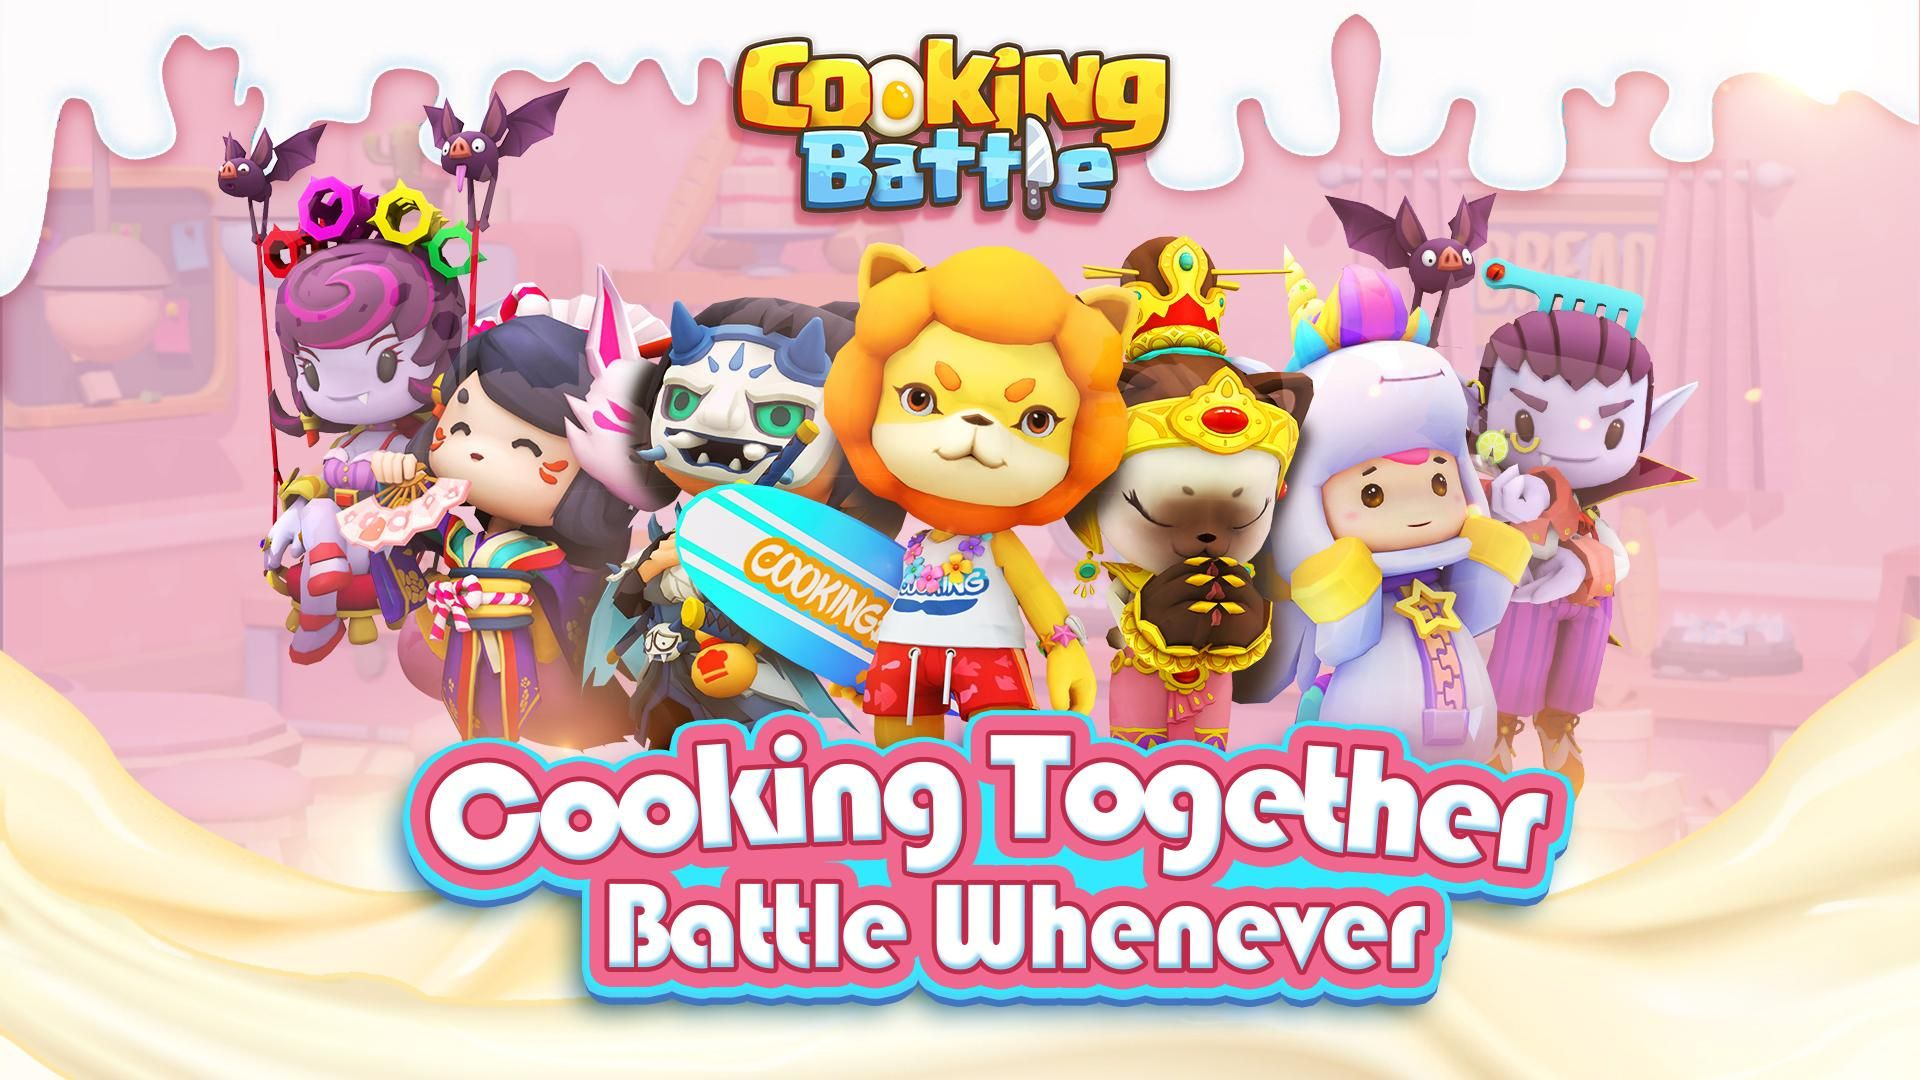 Cooking Battle! 游戏截图1